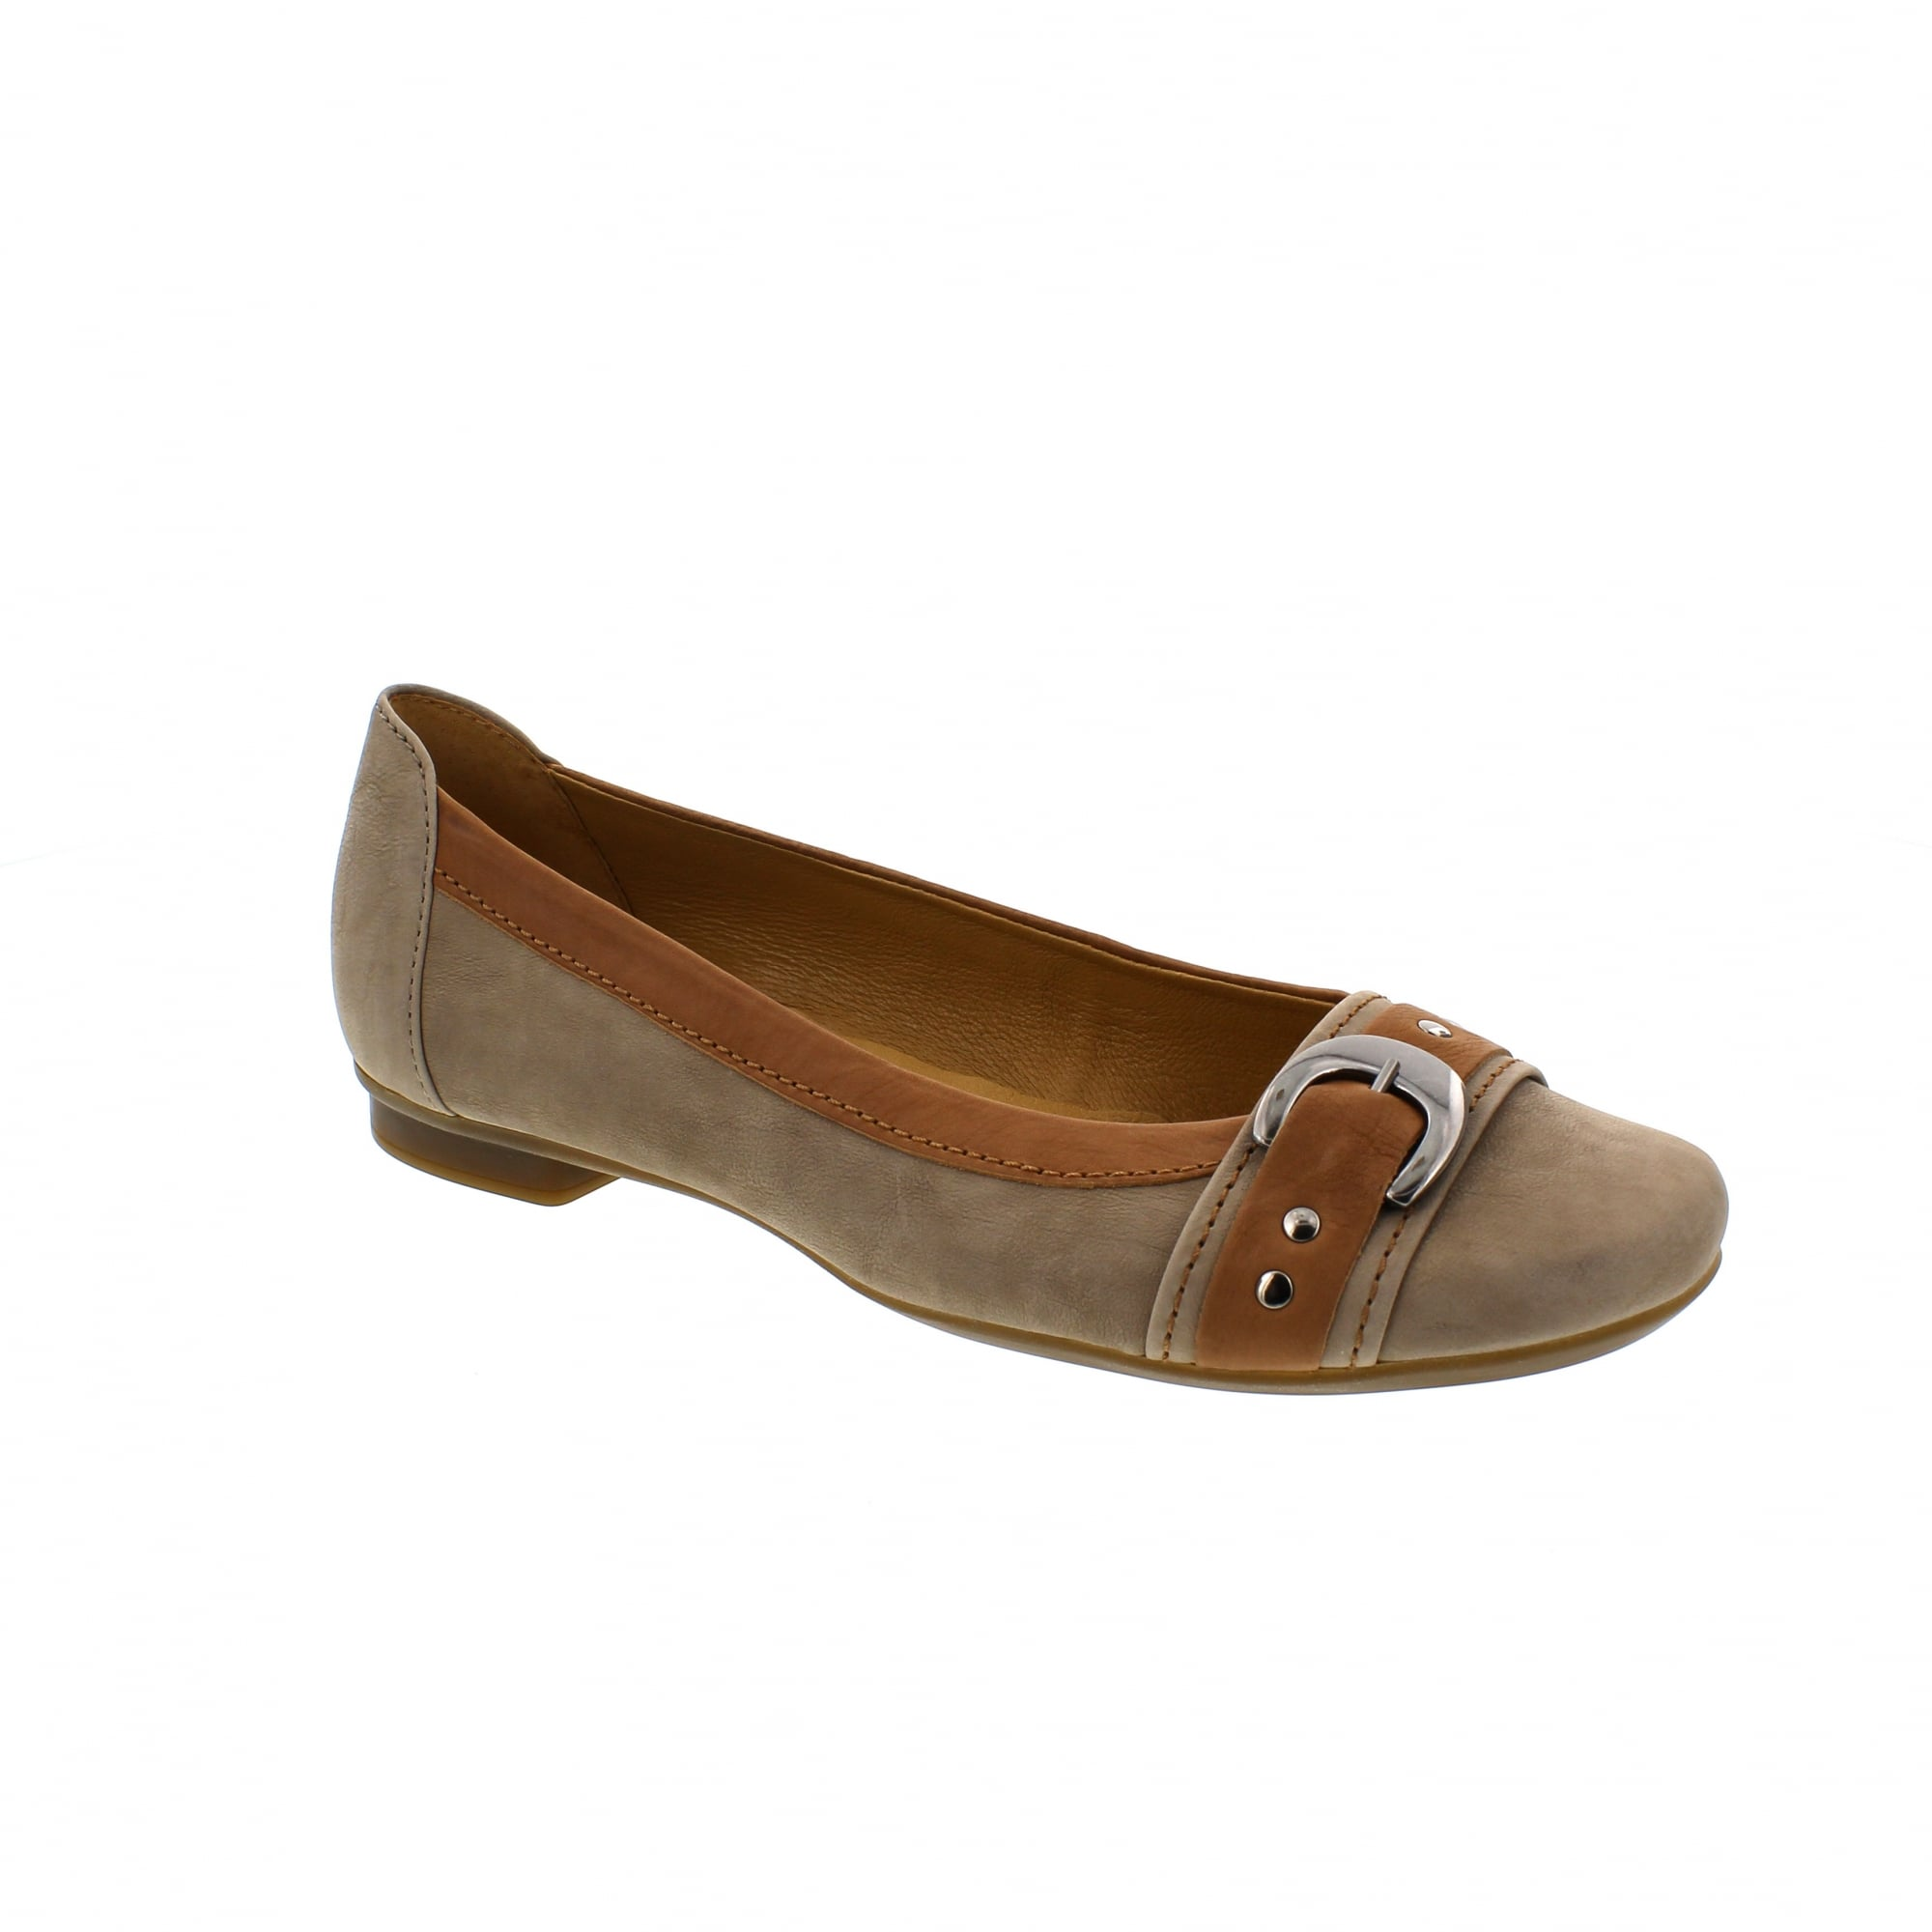 05f30847a550 Gabor Indiana   84-113-19 - Womens from Rogerson Shoes UK